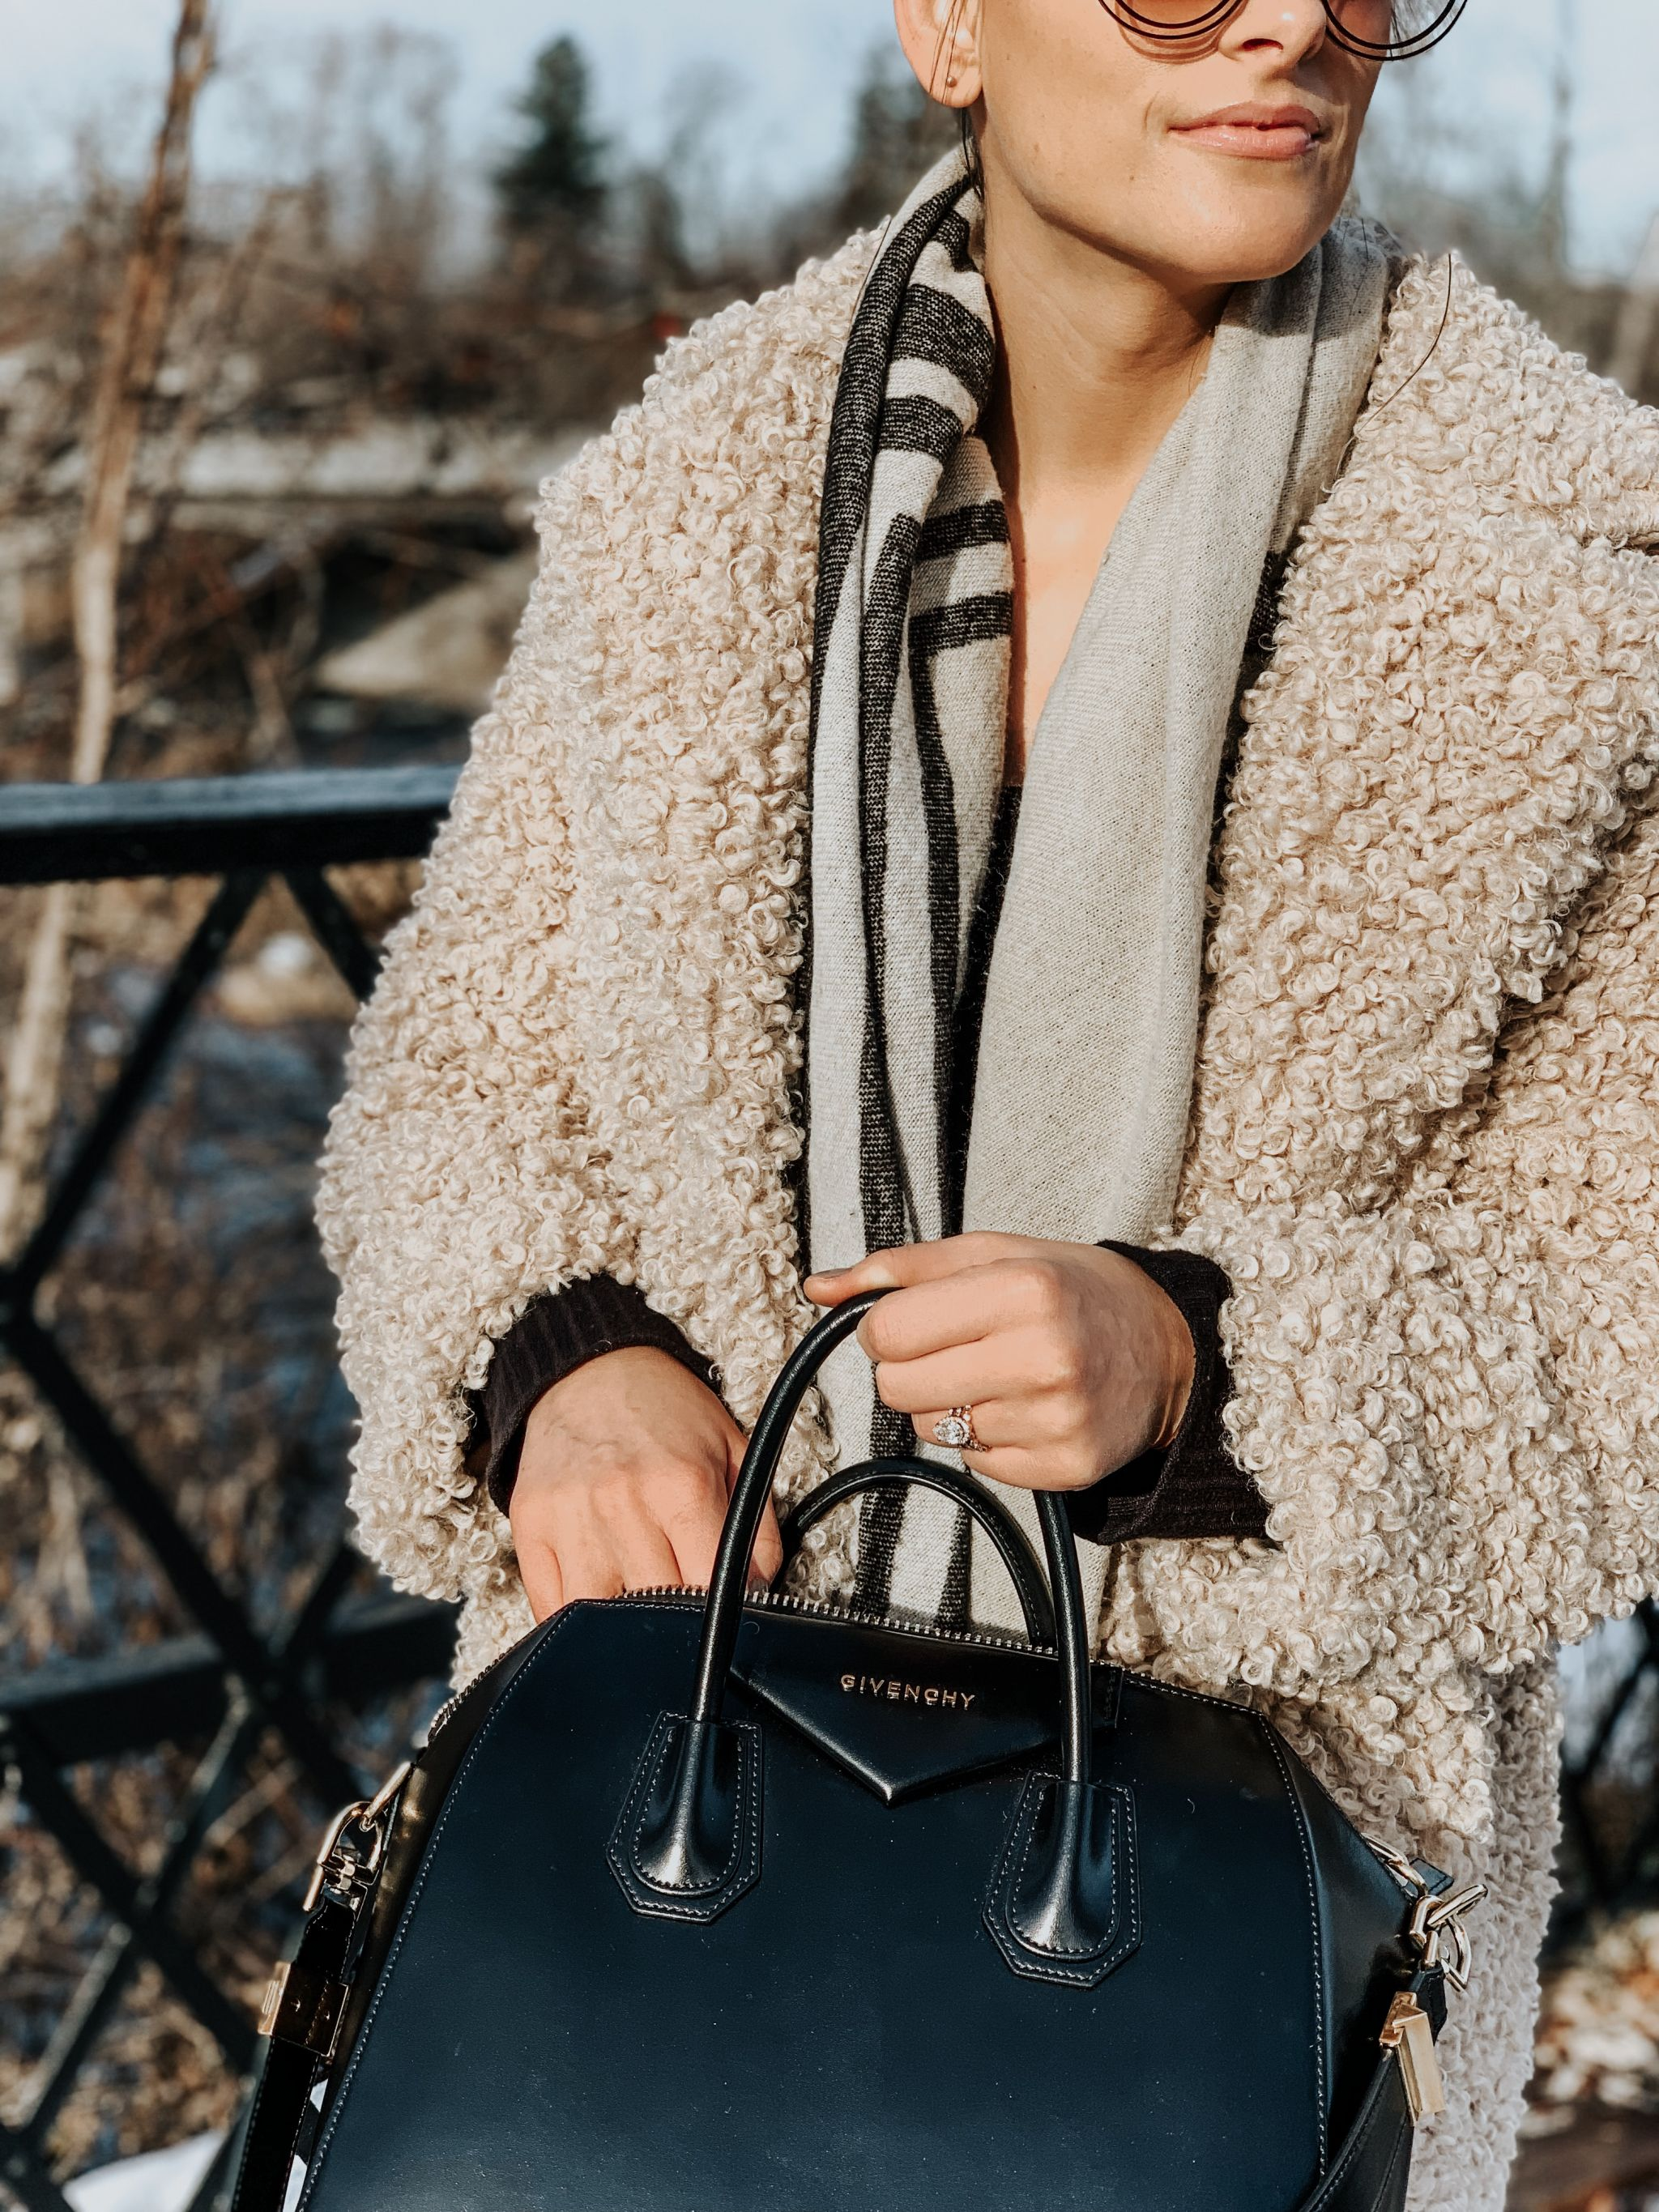 girl holding givenchy antigona bag and wearing teddy coat